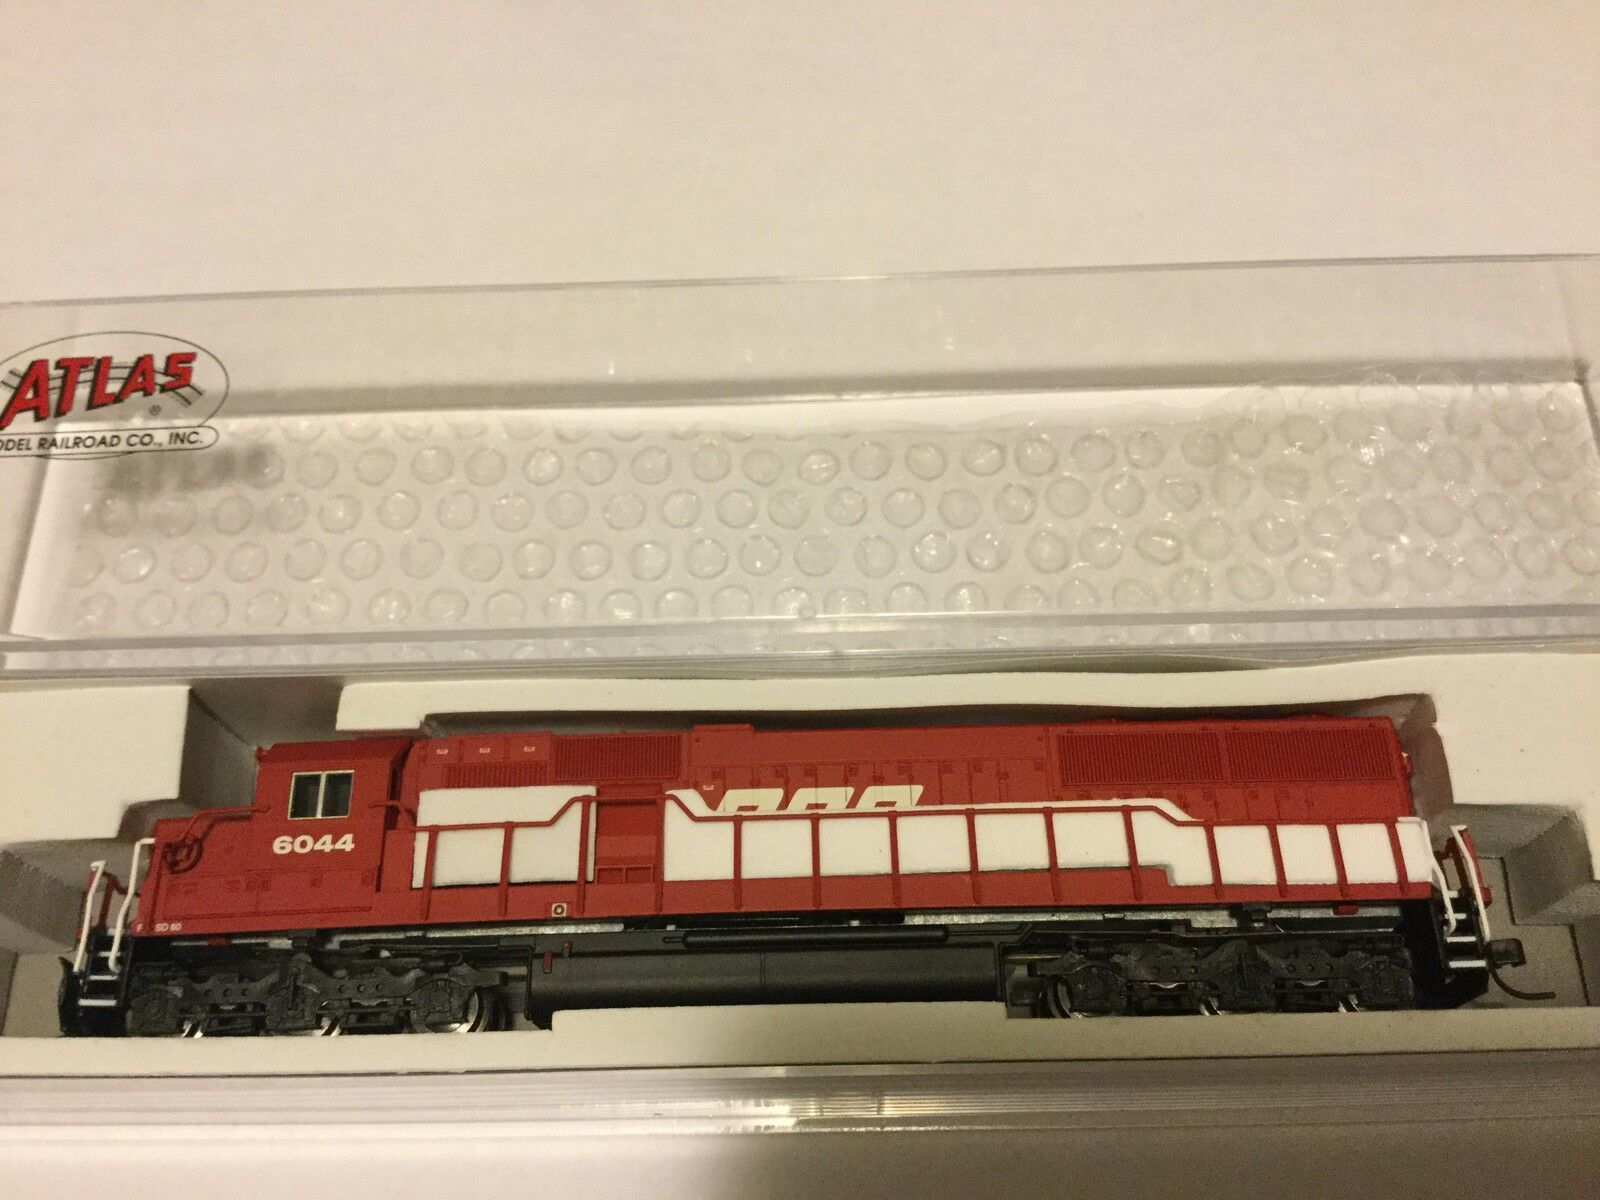 ATLAS 1 160 N Scale  SD-60 SOO LINE Rd Rd Rd  6044 NCE for DCC   40002067 F S a38c27